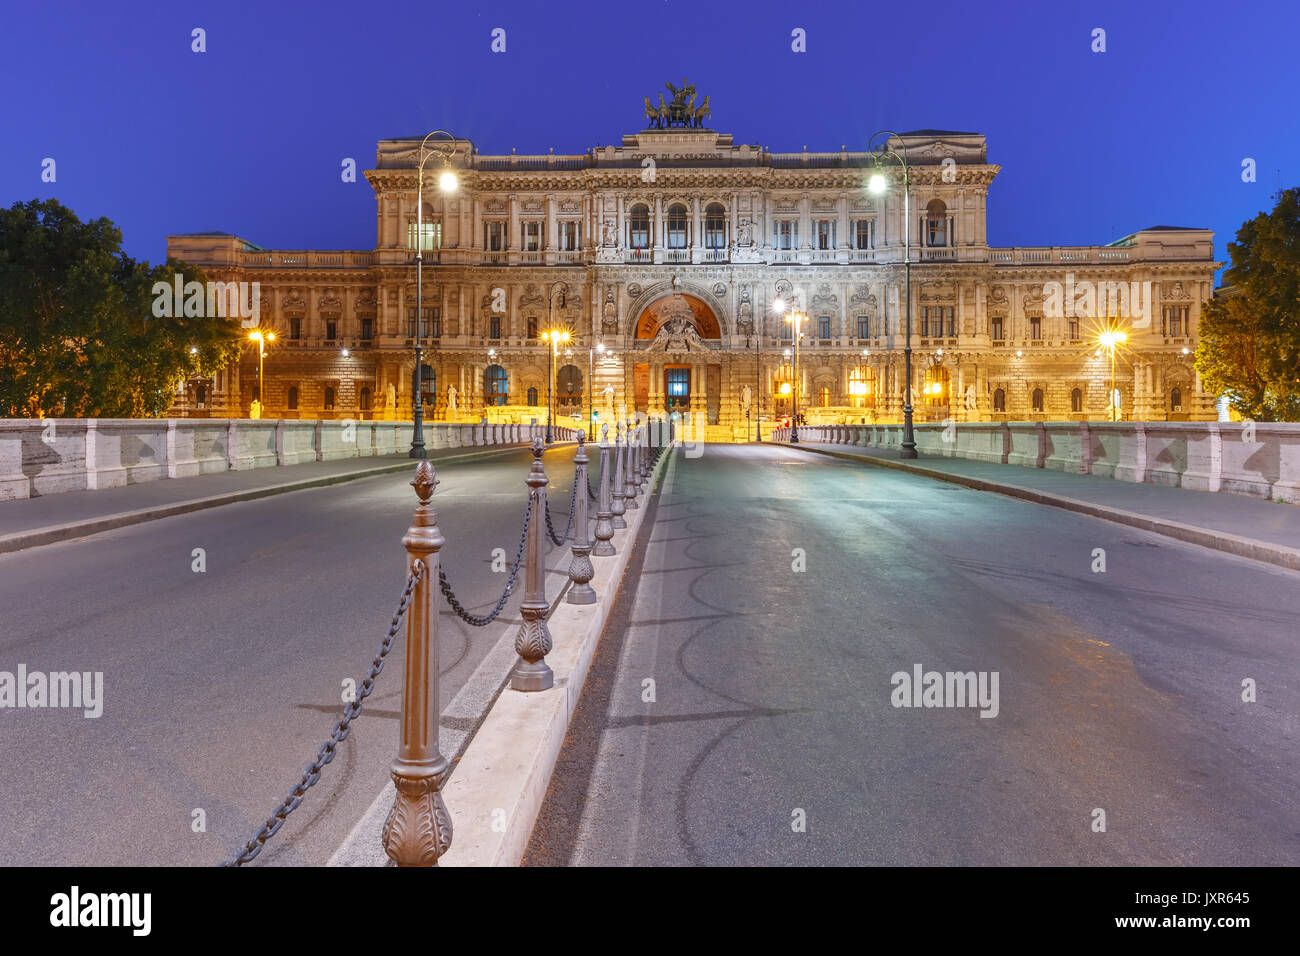 The Palace of Justice in Rome, Italy - Stock Image